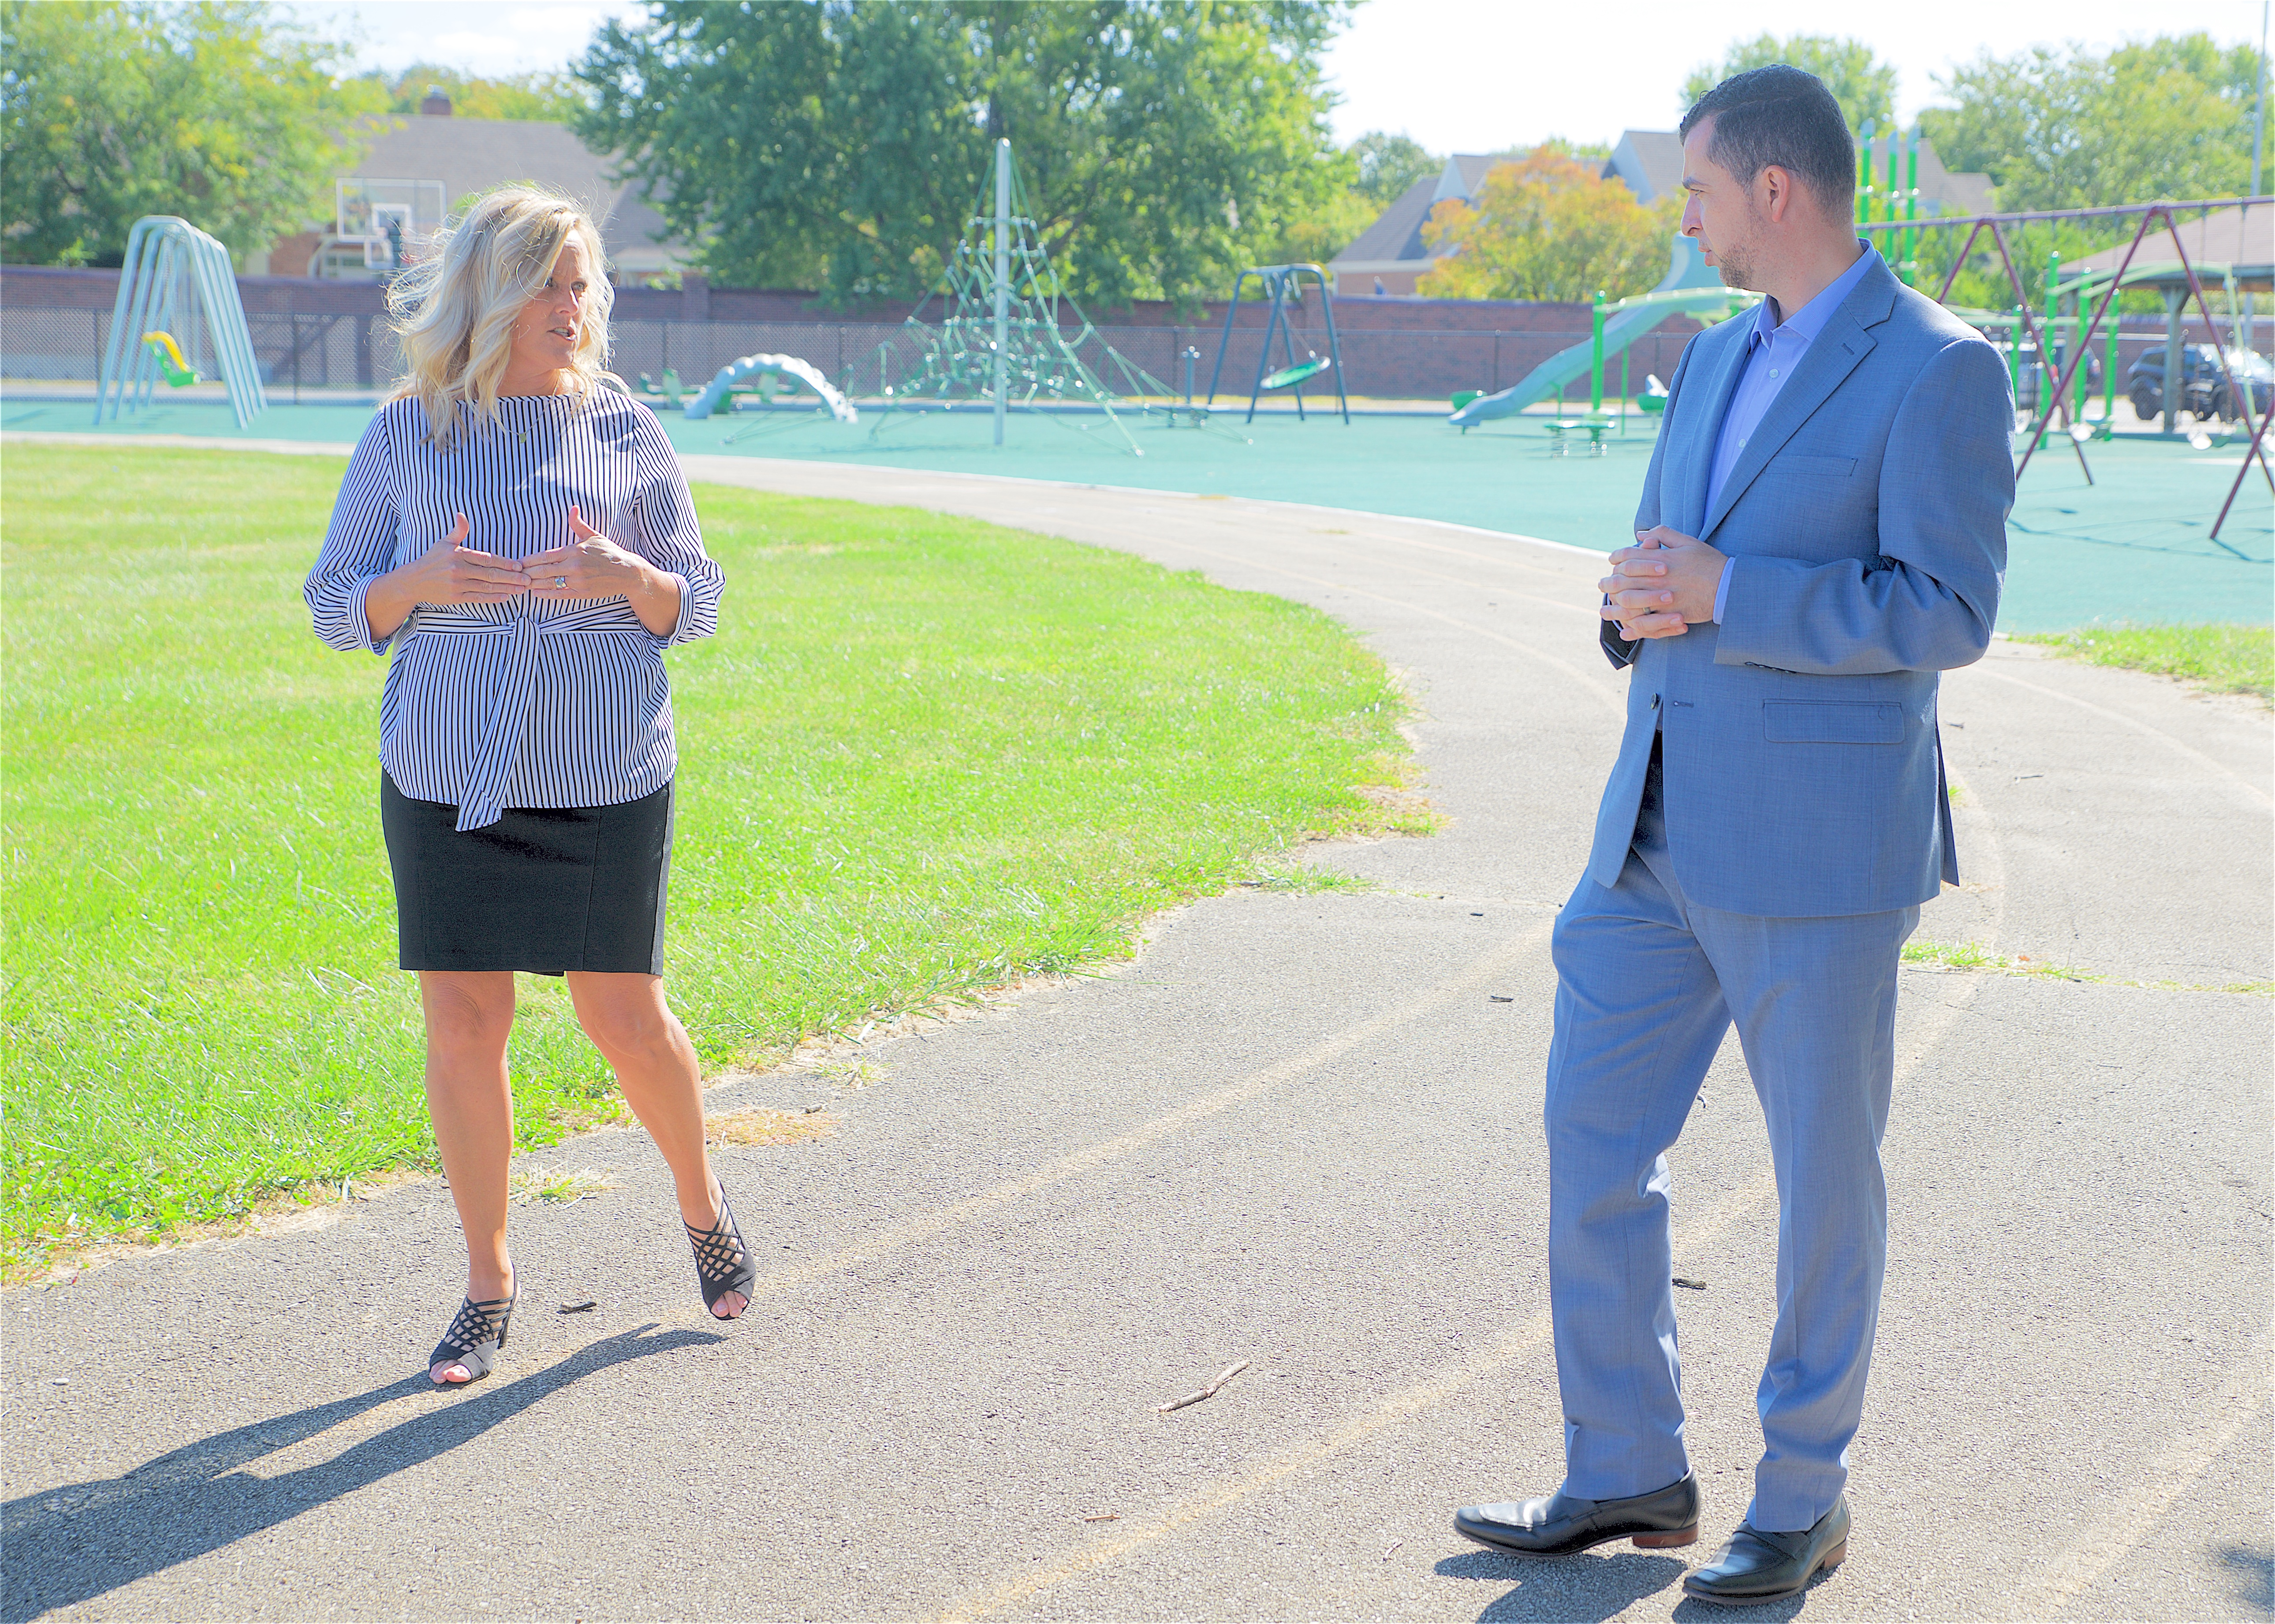 Indiana education chief Jennifer McCormick and Democratic state Senate candidate Fady Qaddoura.walk on a track as part of a political ad.